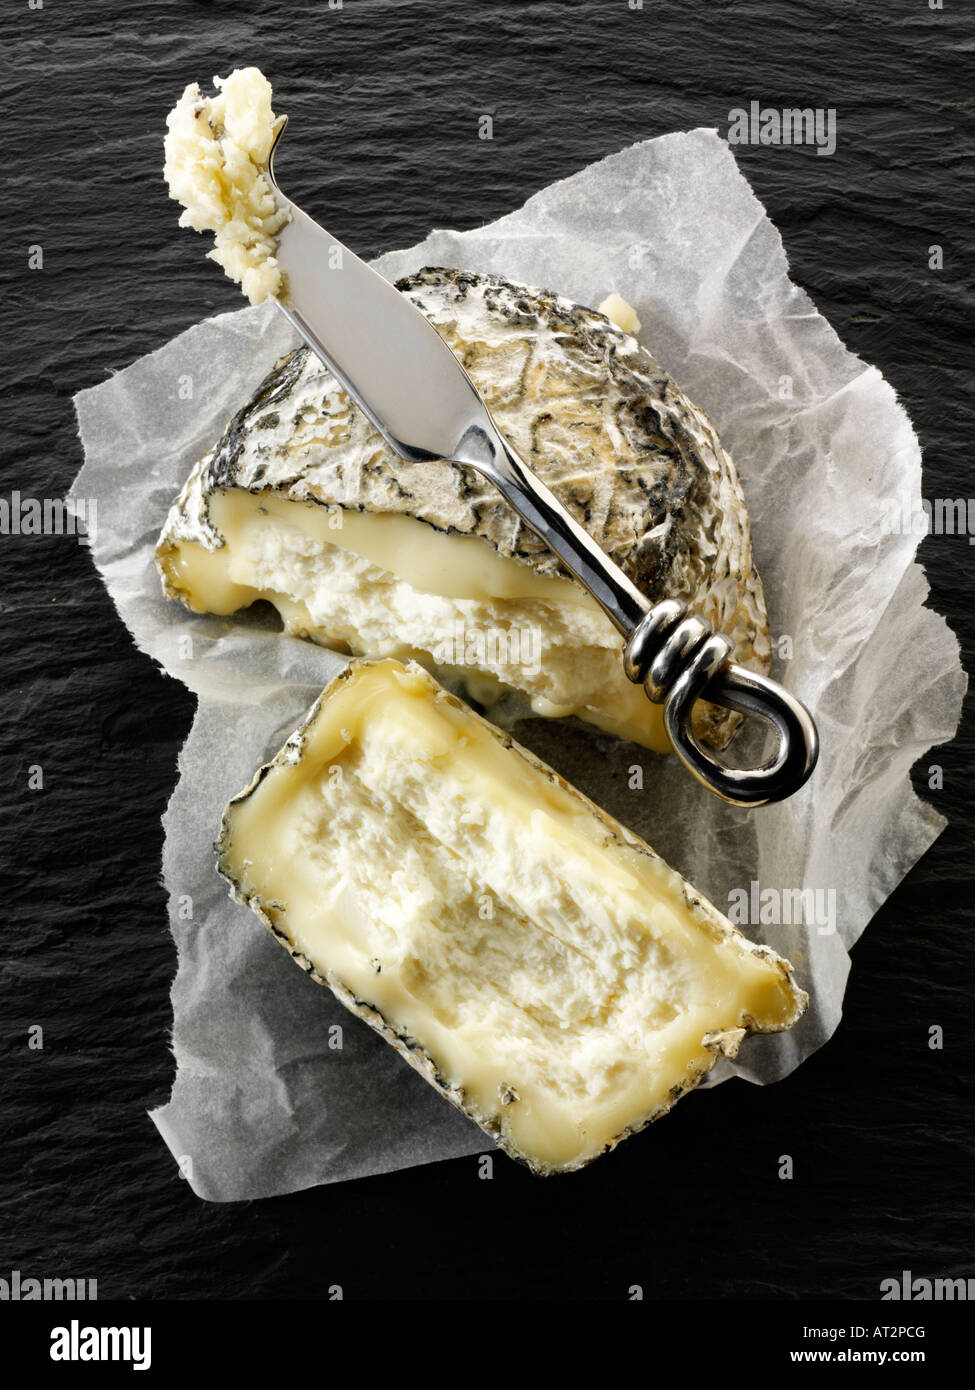 organic farm cinder goats cheese from Normandy against a black background - Stock Image